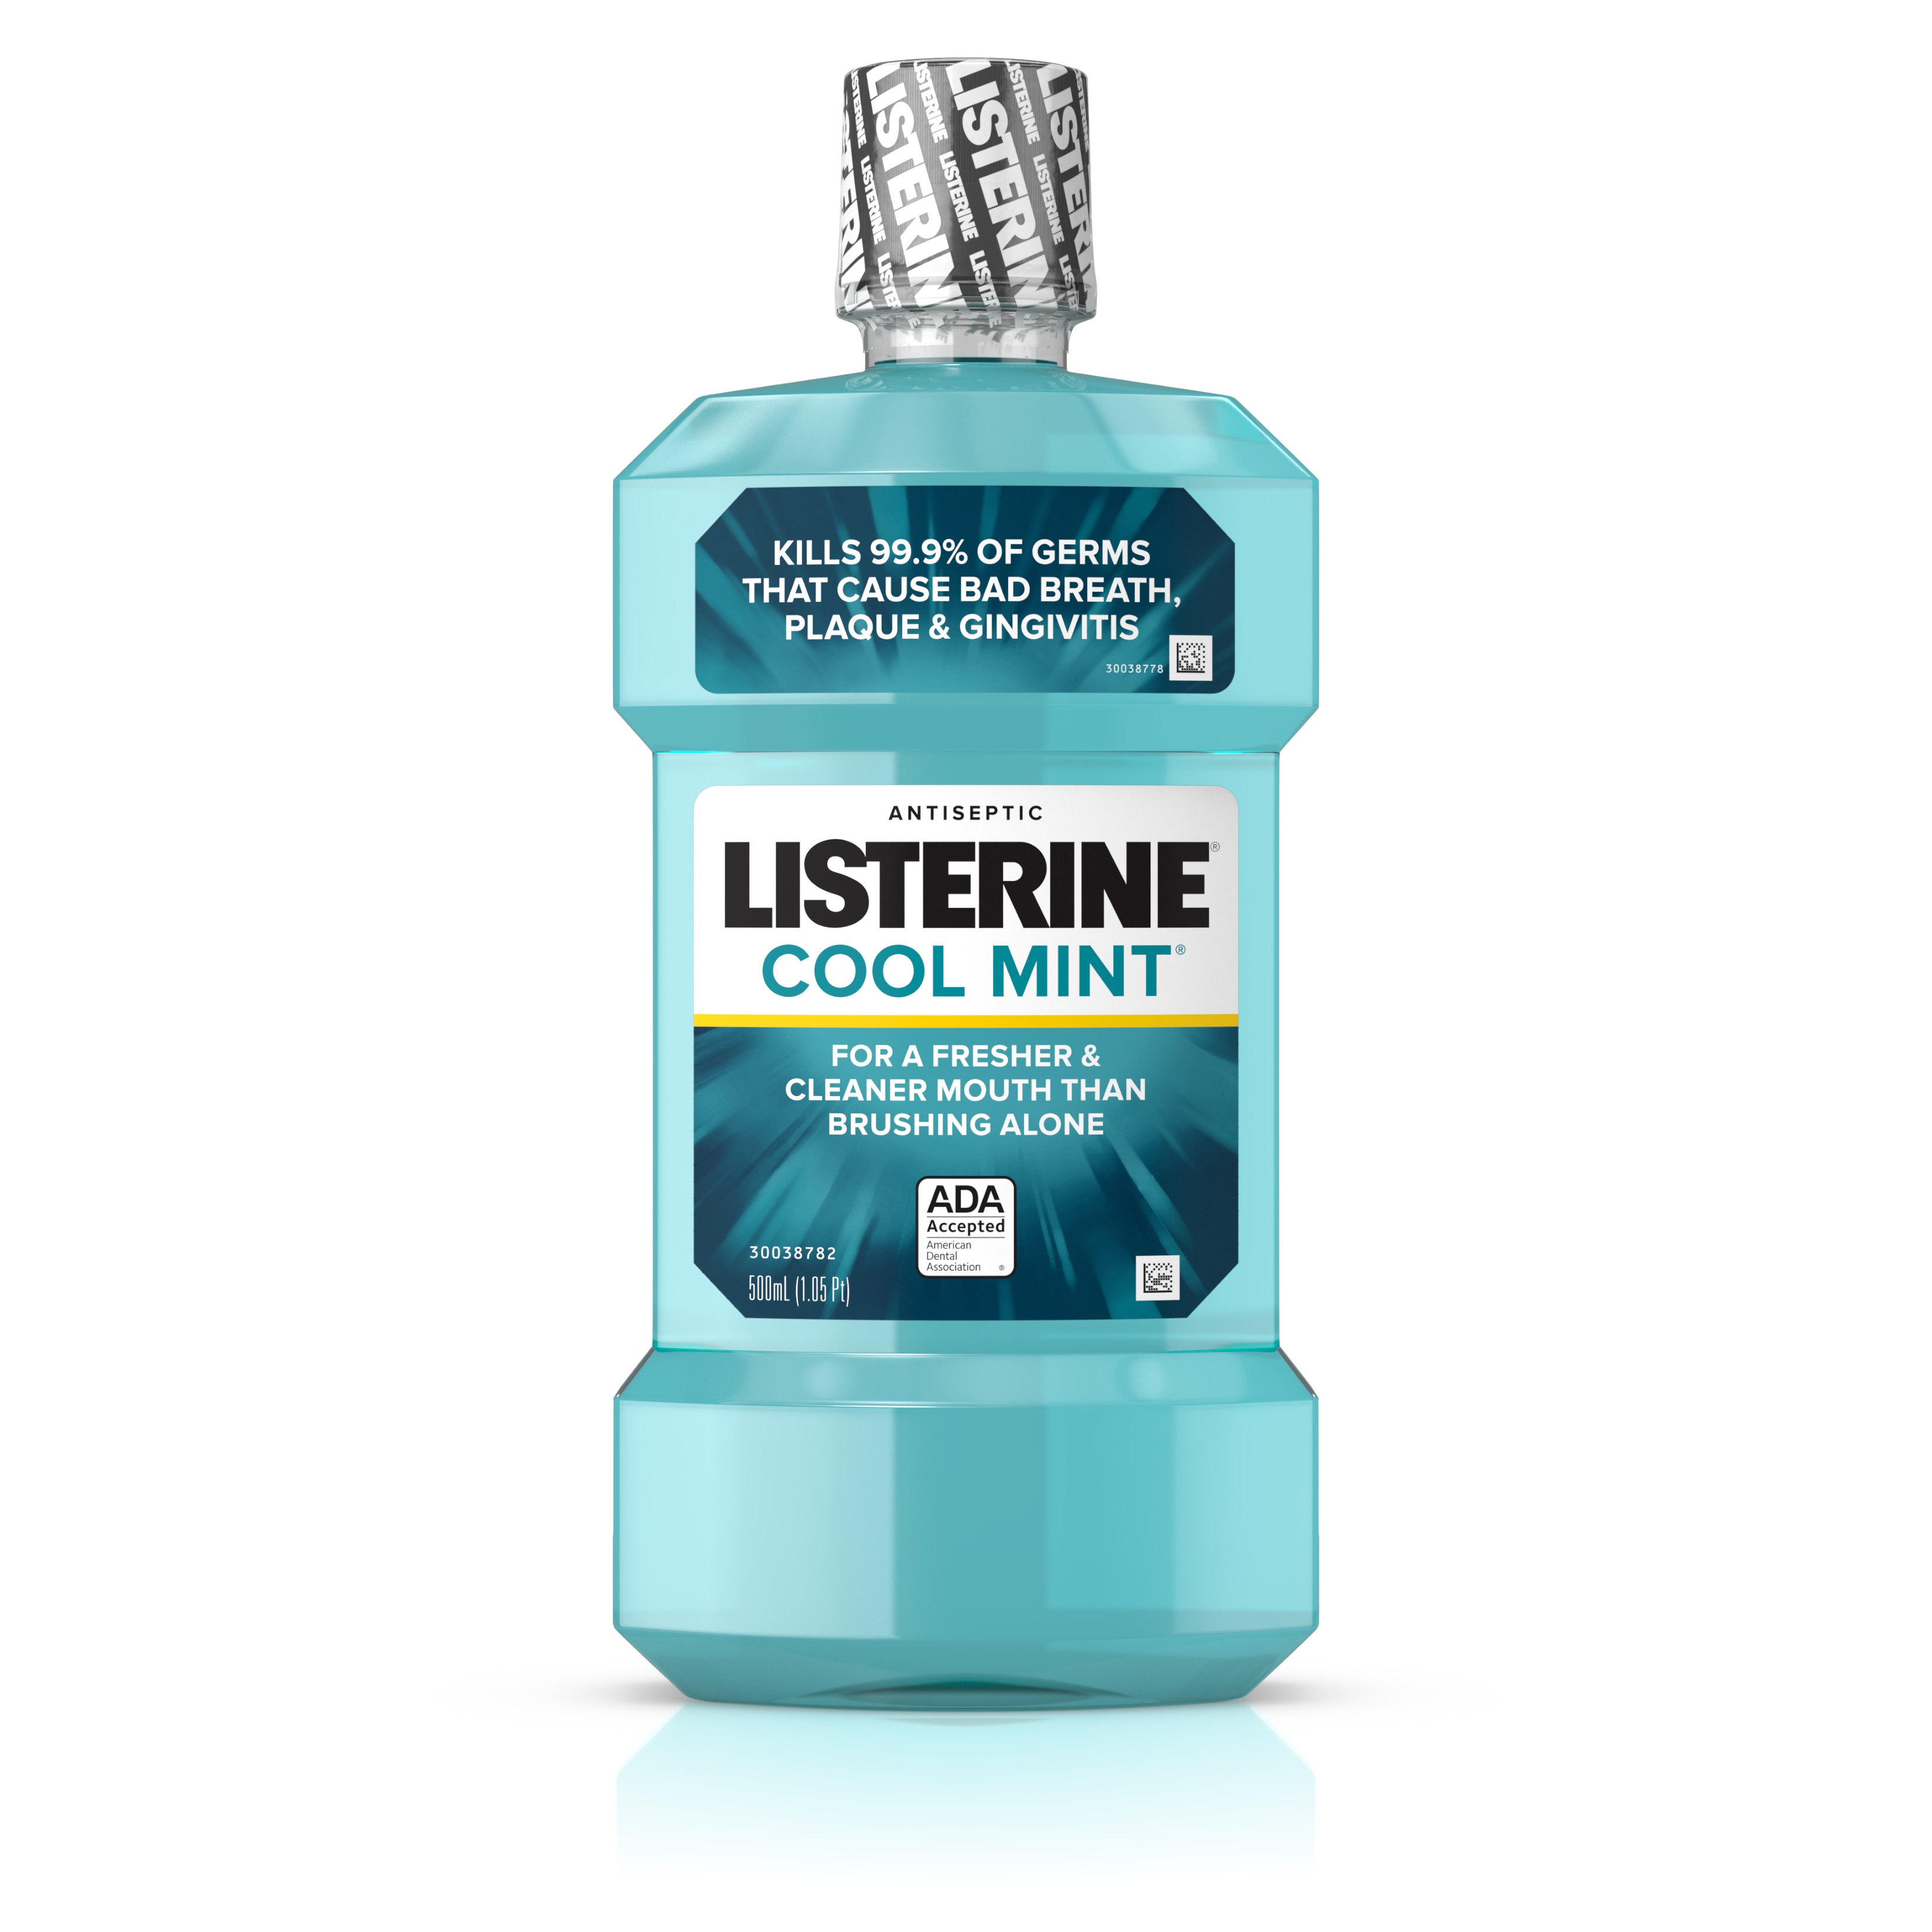 Listerine Cool Mint Antiseptic Mouthwash for Bad Breath, 500 ml